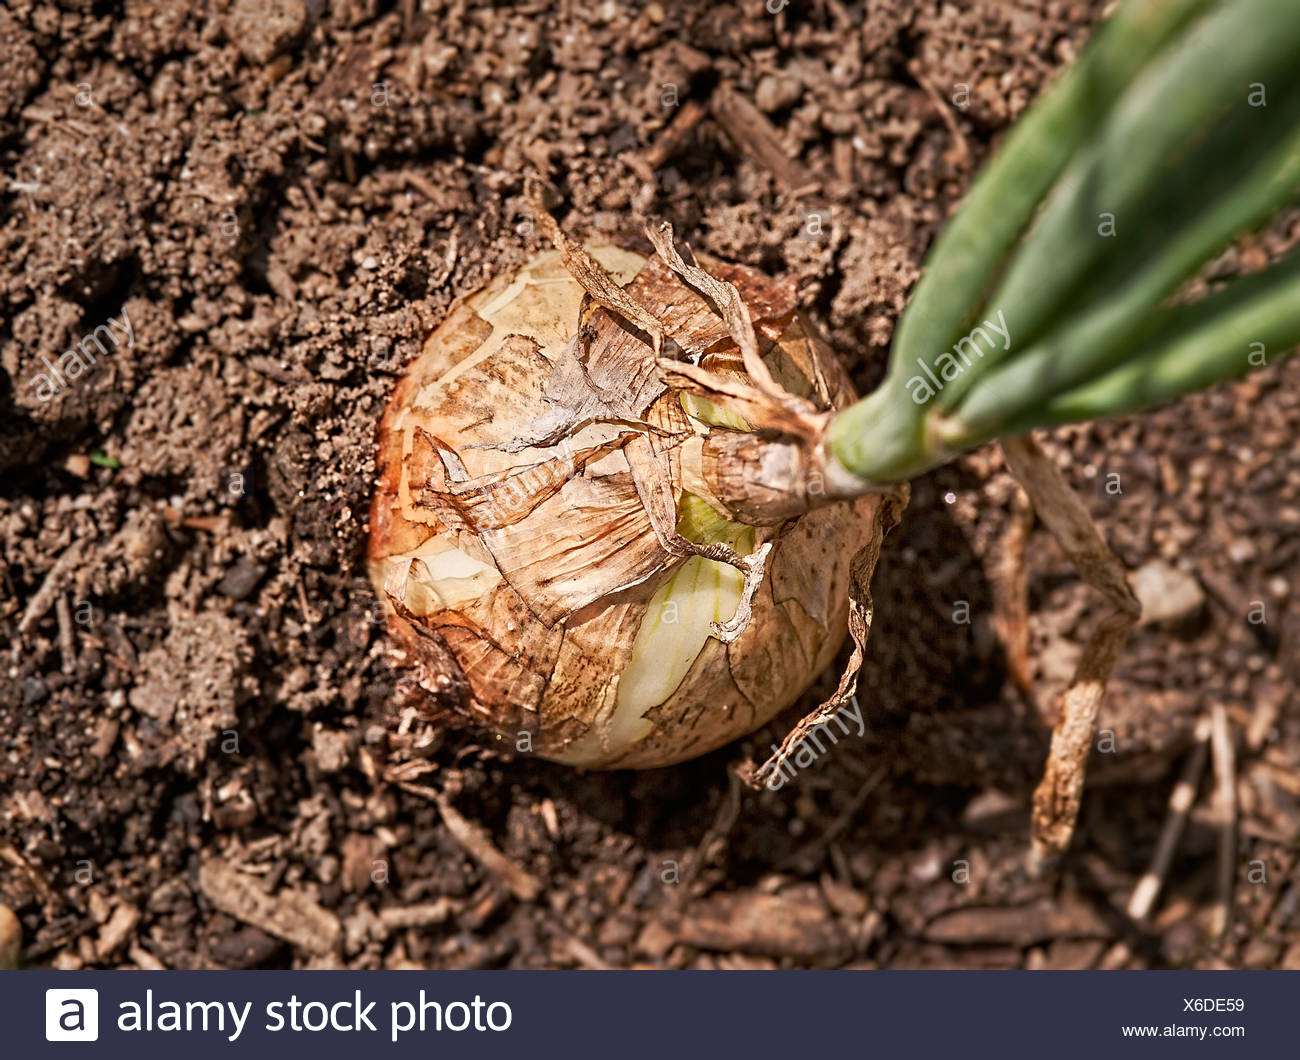 Onion ready for harvest. - Stock Image